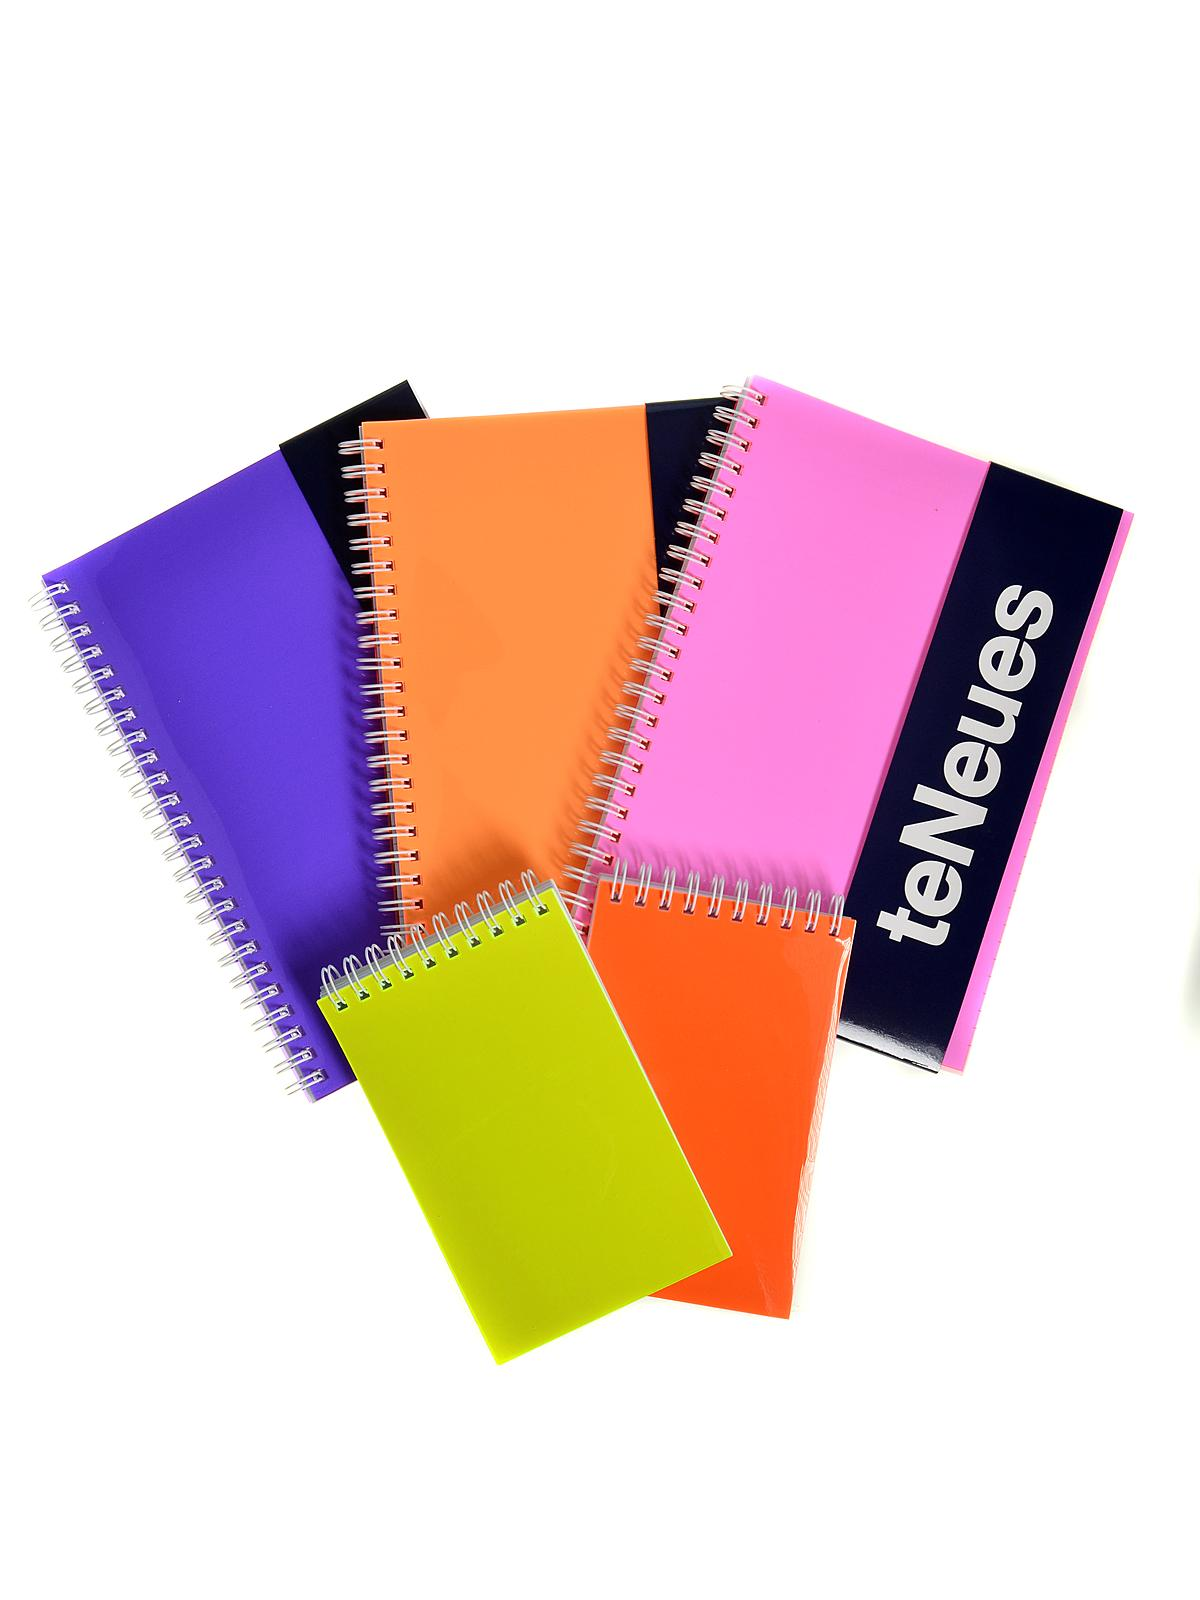 Jelly Journals